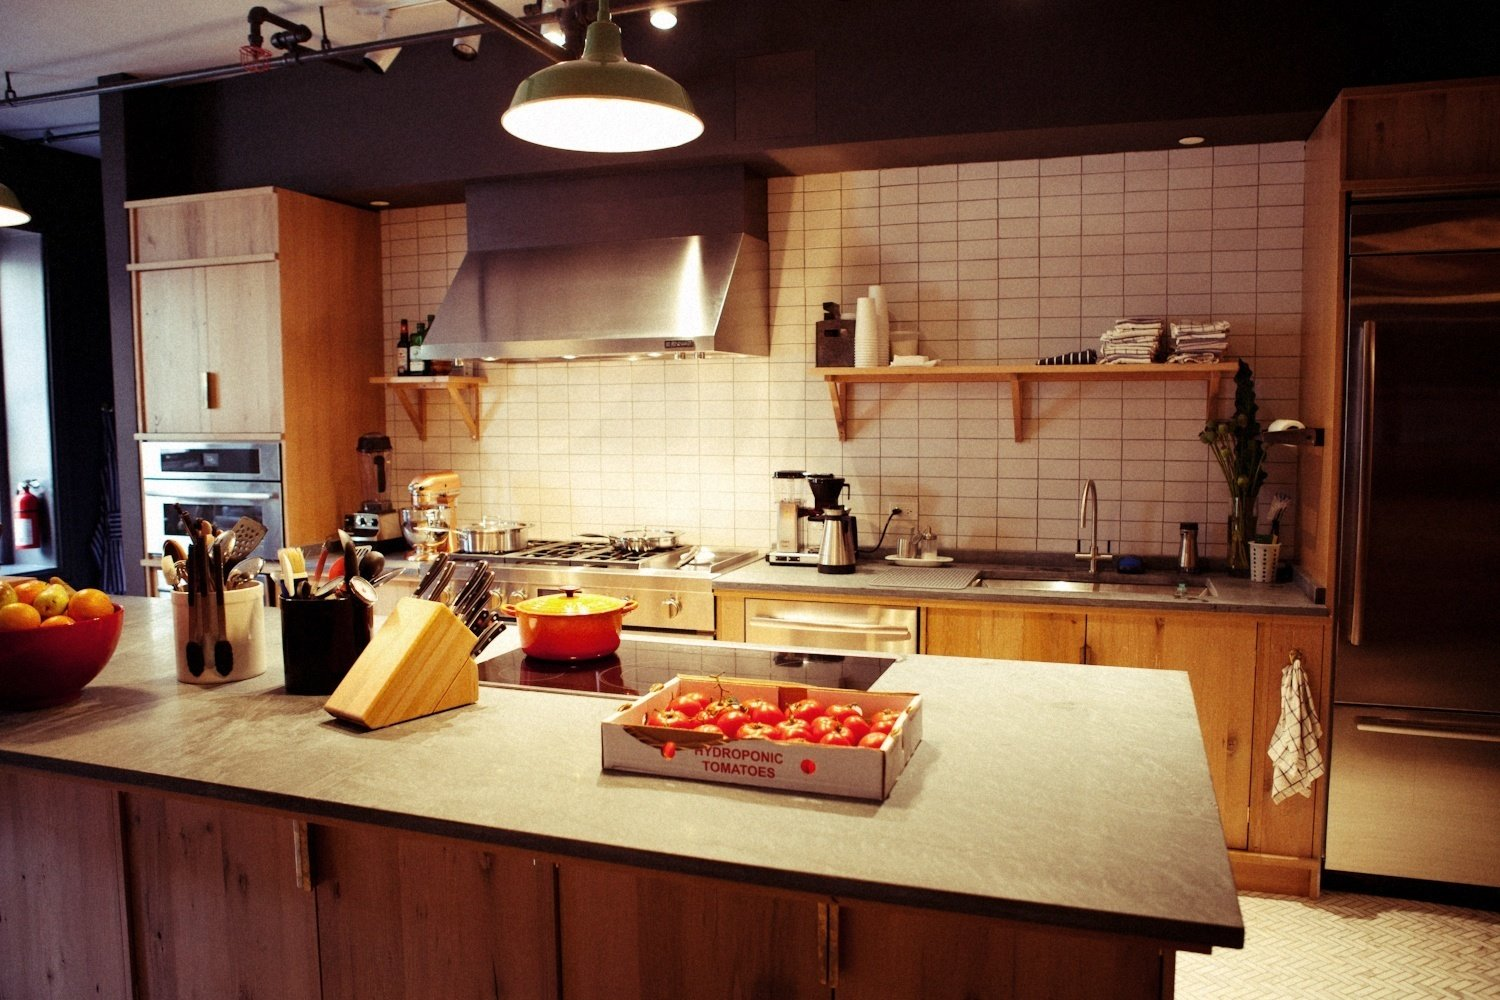 The builders value-engineered the project to maximize the limited budget. They usually have very high-end clients but they embraced this project because they were excited to help build a space for the next generation of chefs, mixologists, and sommeliers.  Test Kitchen Before-and-After by Jaime Gillin